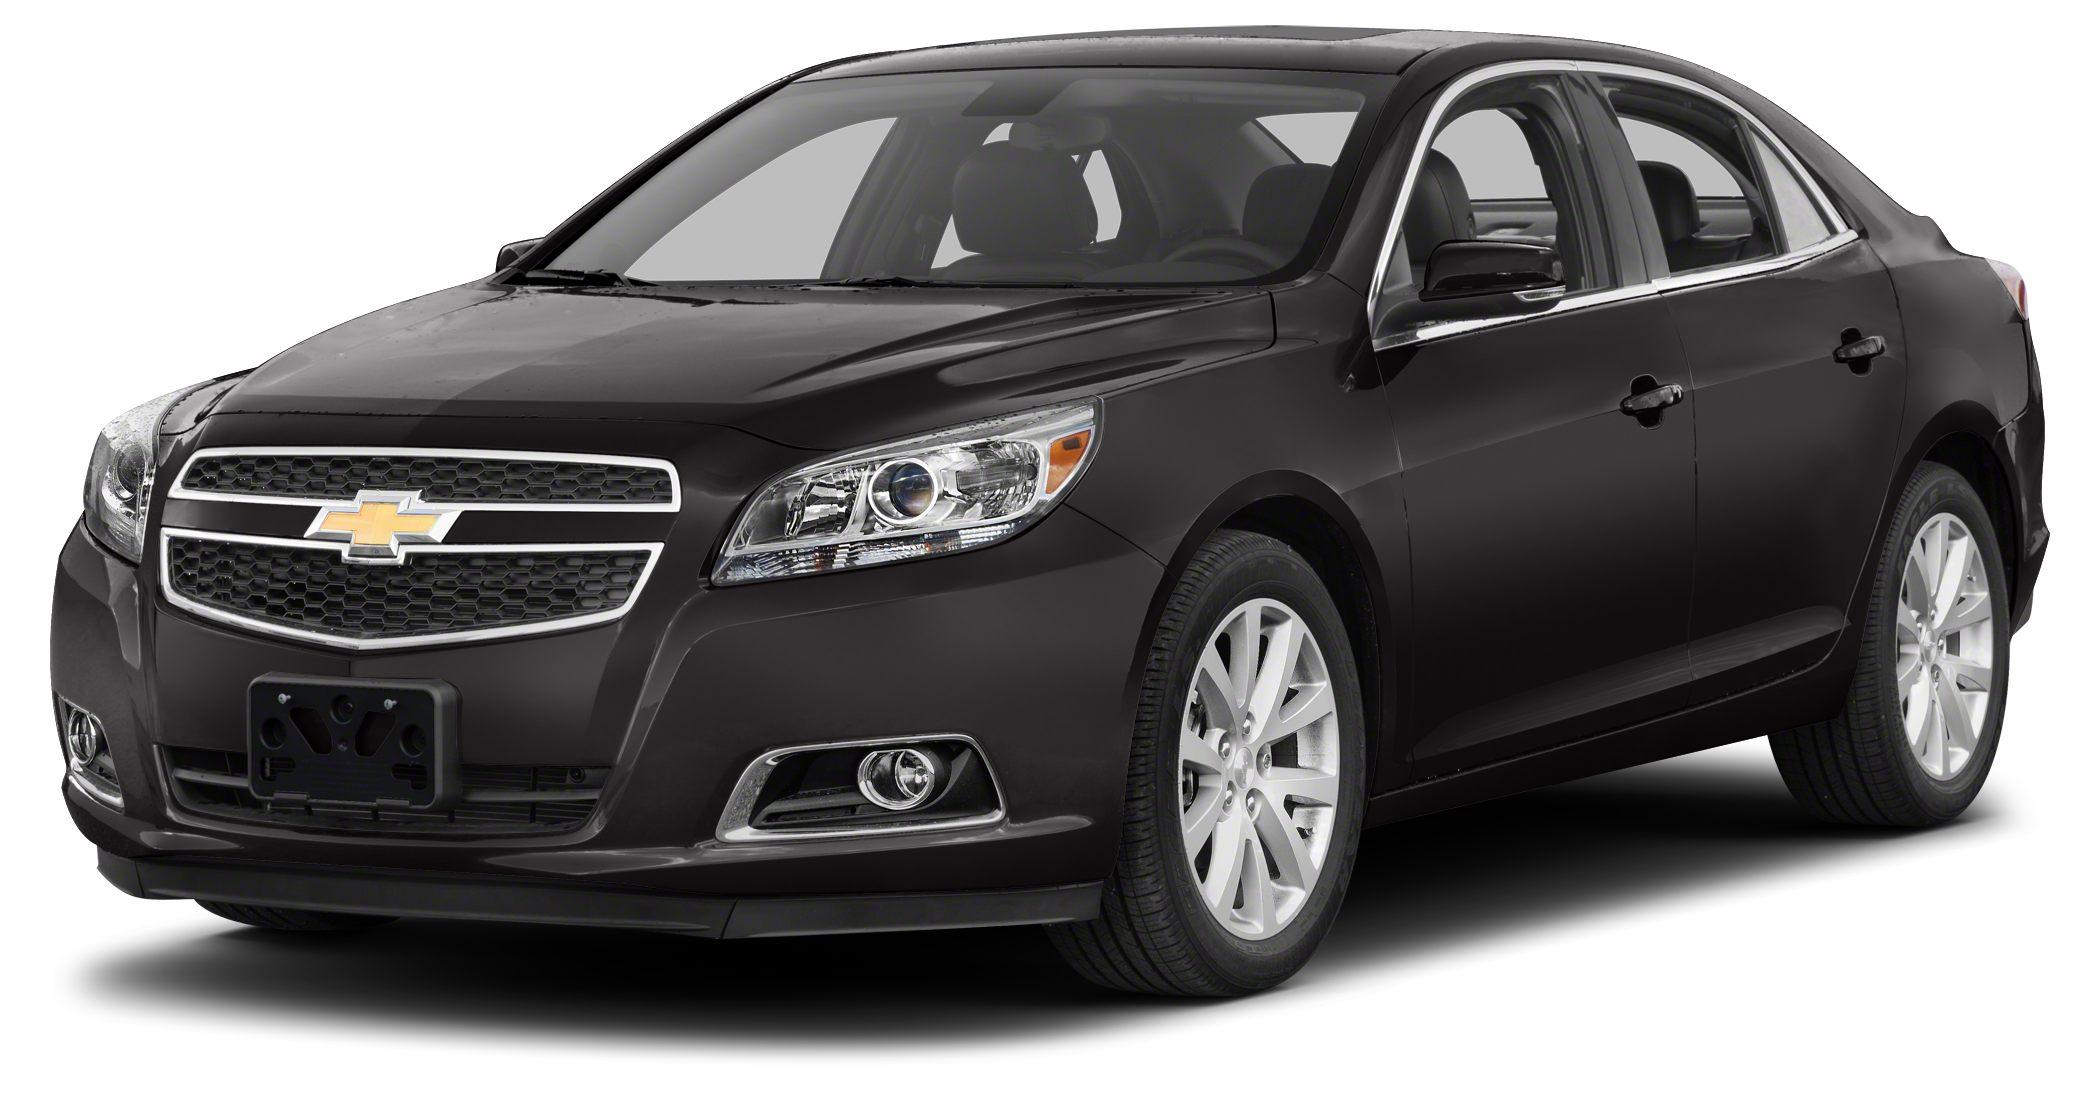 2013 Chevrolet Malibu LT w1LT OUR PRICESYoure probably wondering why our prices are so much low